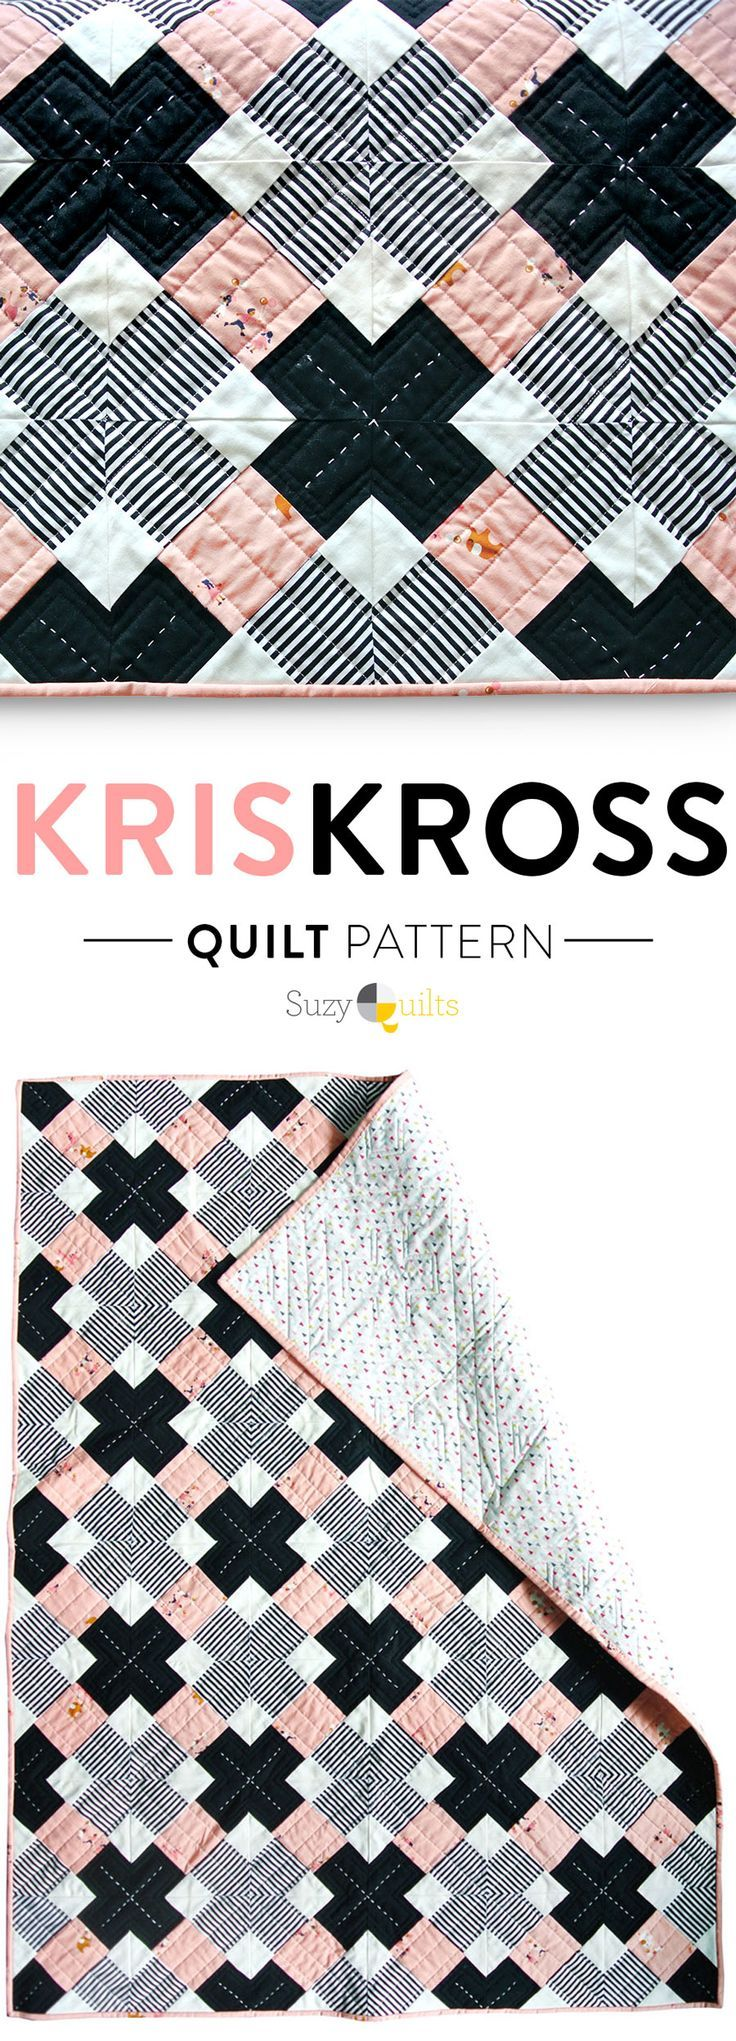 A simple, modern quilt pattern that looks complex. Check out the YouTube video tutorial with instructions!